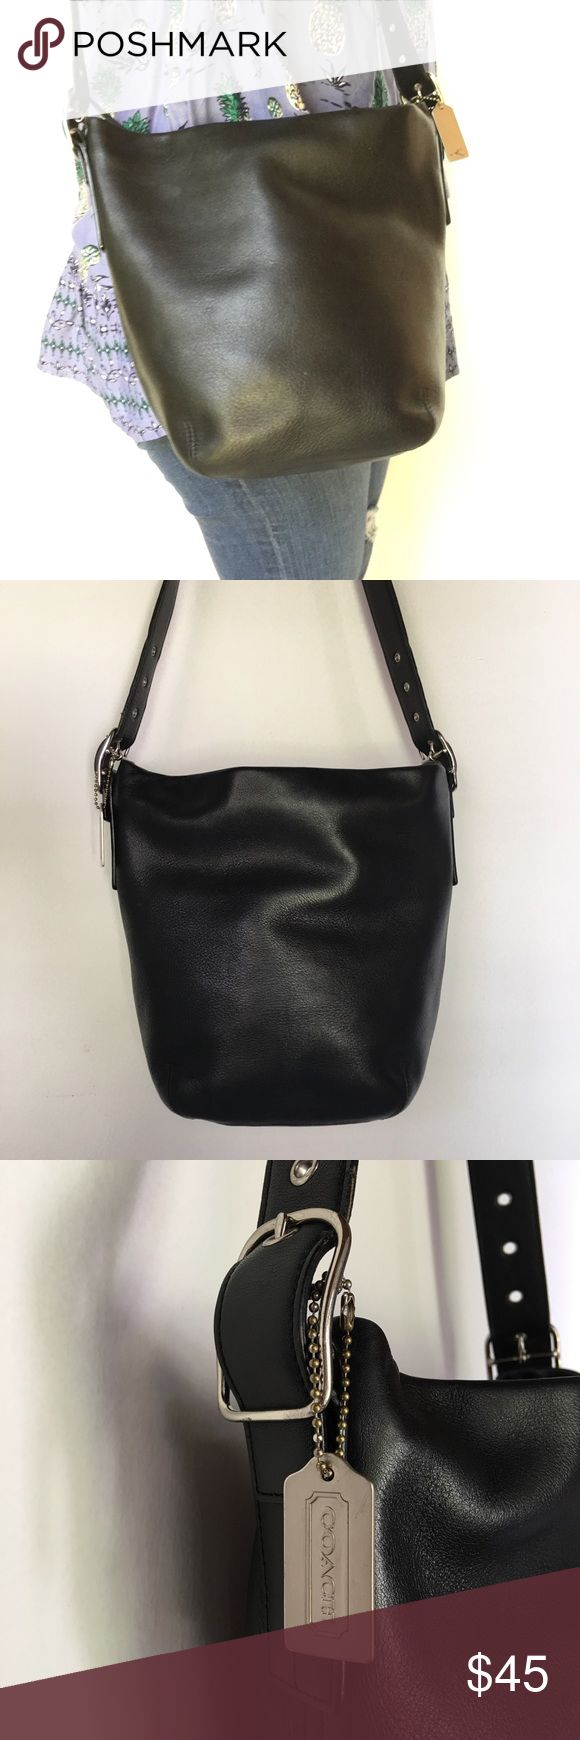 "Coach Legacy Black Leather Bucket Bag Medium Pre-owned authentic Coach Legacy Black Leather Bucket Bag Medium. Bag is 11x10"" inches. Adjustable Strap is 37.5"" inches. Bag is in great condition, inner lining has some minimal wear. Please look at pictures for better reference. Happy Shopping! Coach Bags Shoulder Bags"